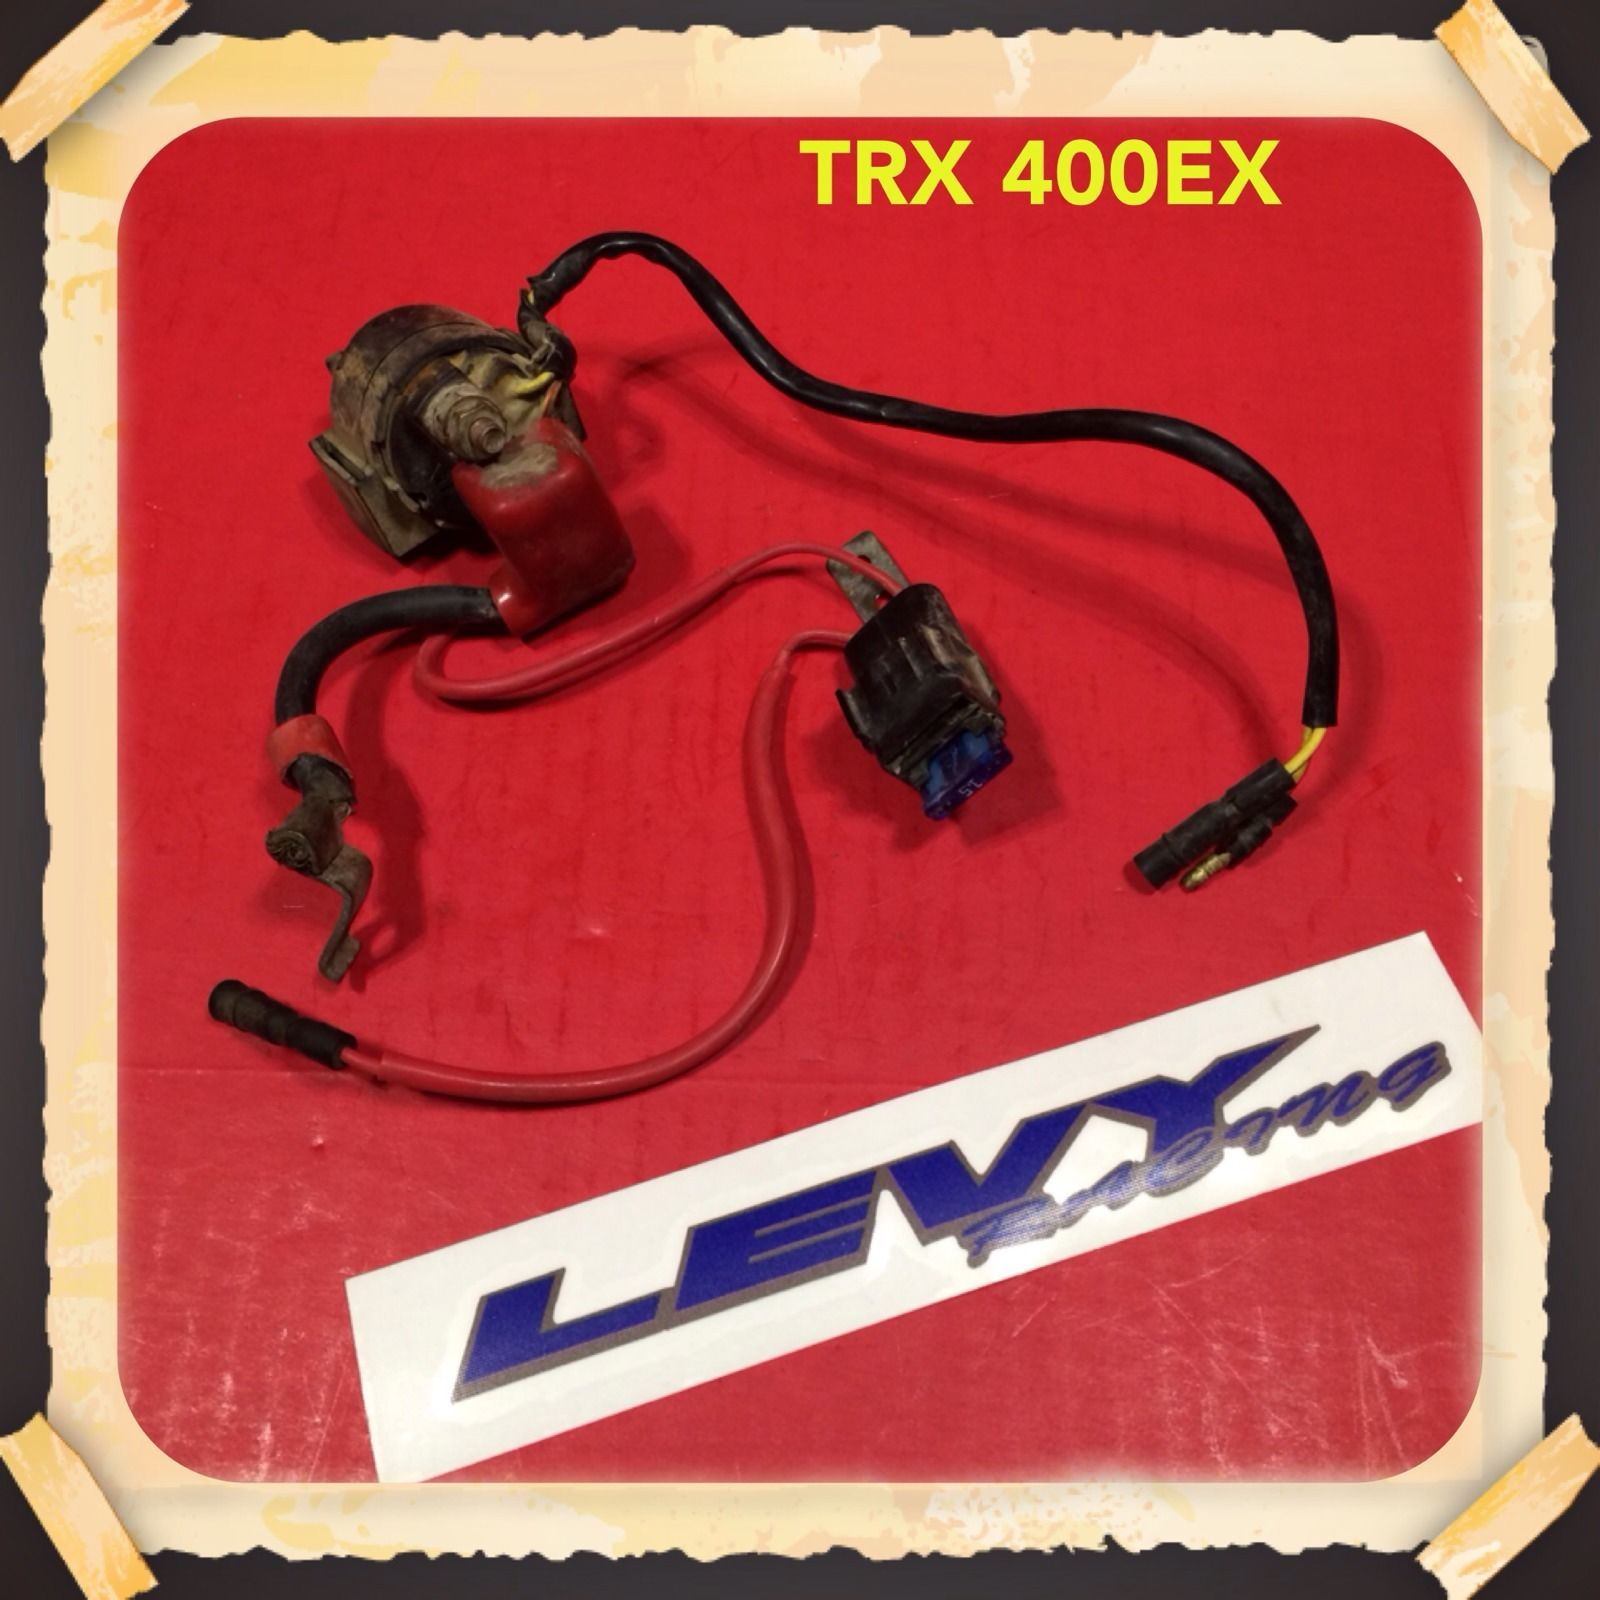 18341d1398219487 400ex wiring solenoid _57 1 400ex wiring to solenoid honda atv forum 2005 honda 400ex wiring diagram at gsmportal.co